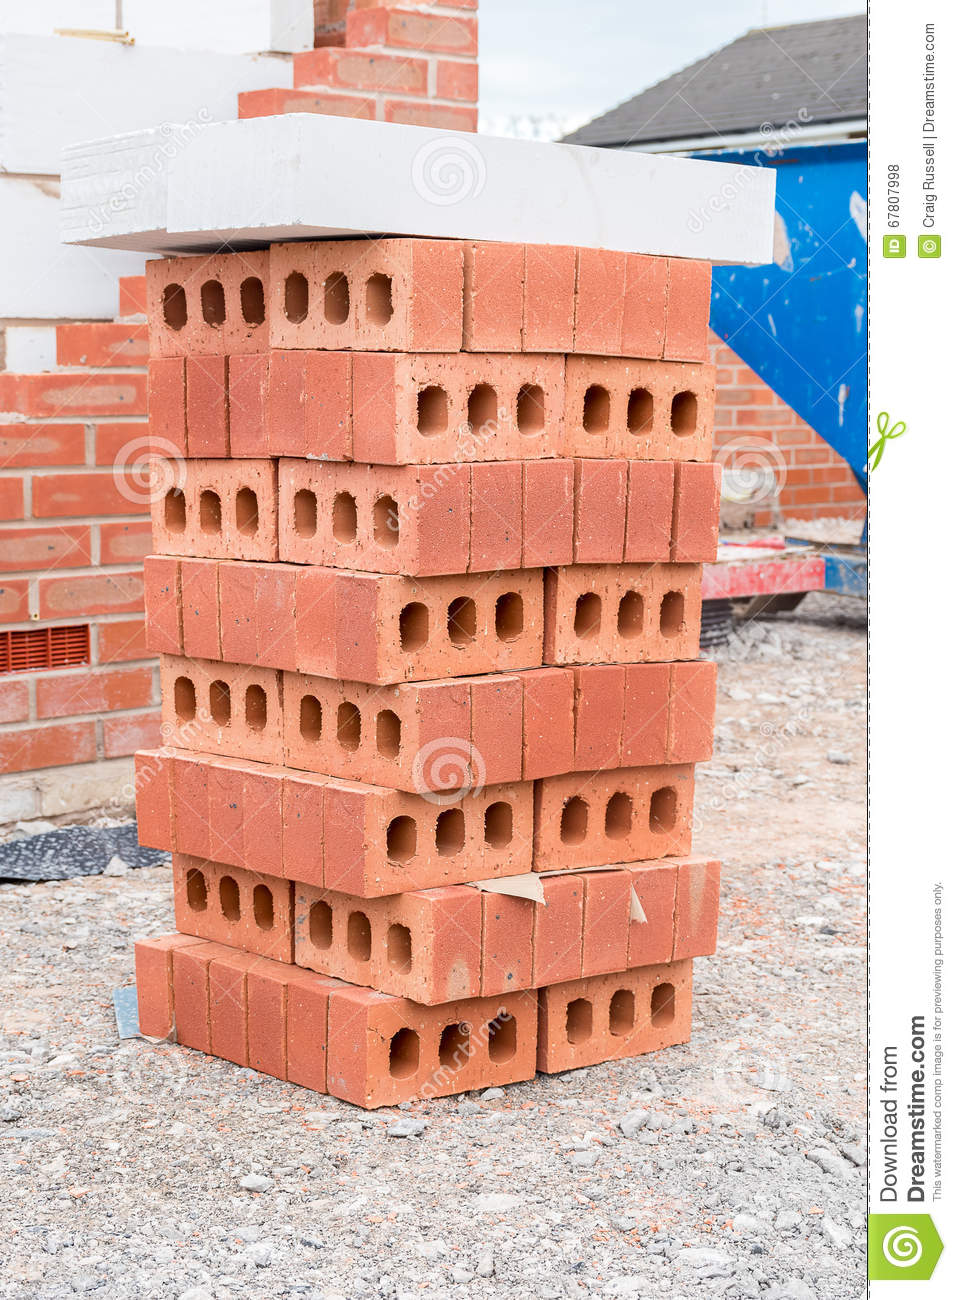 House under construction stock photo image 67807998 for Construction stages of building a house